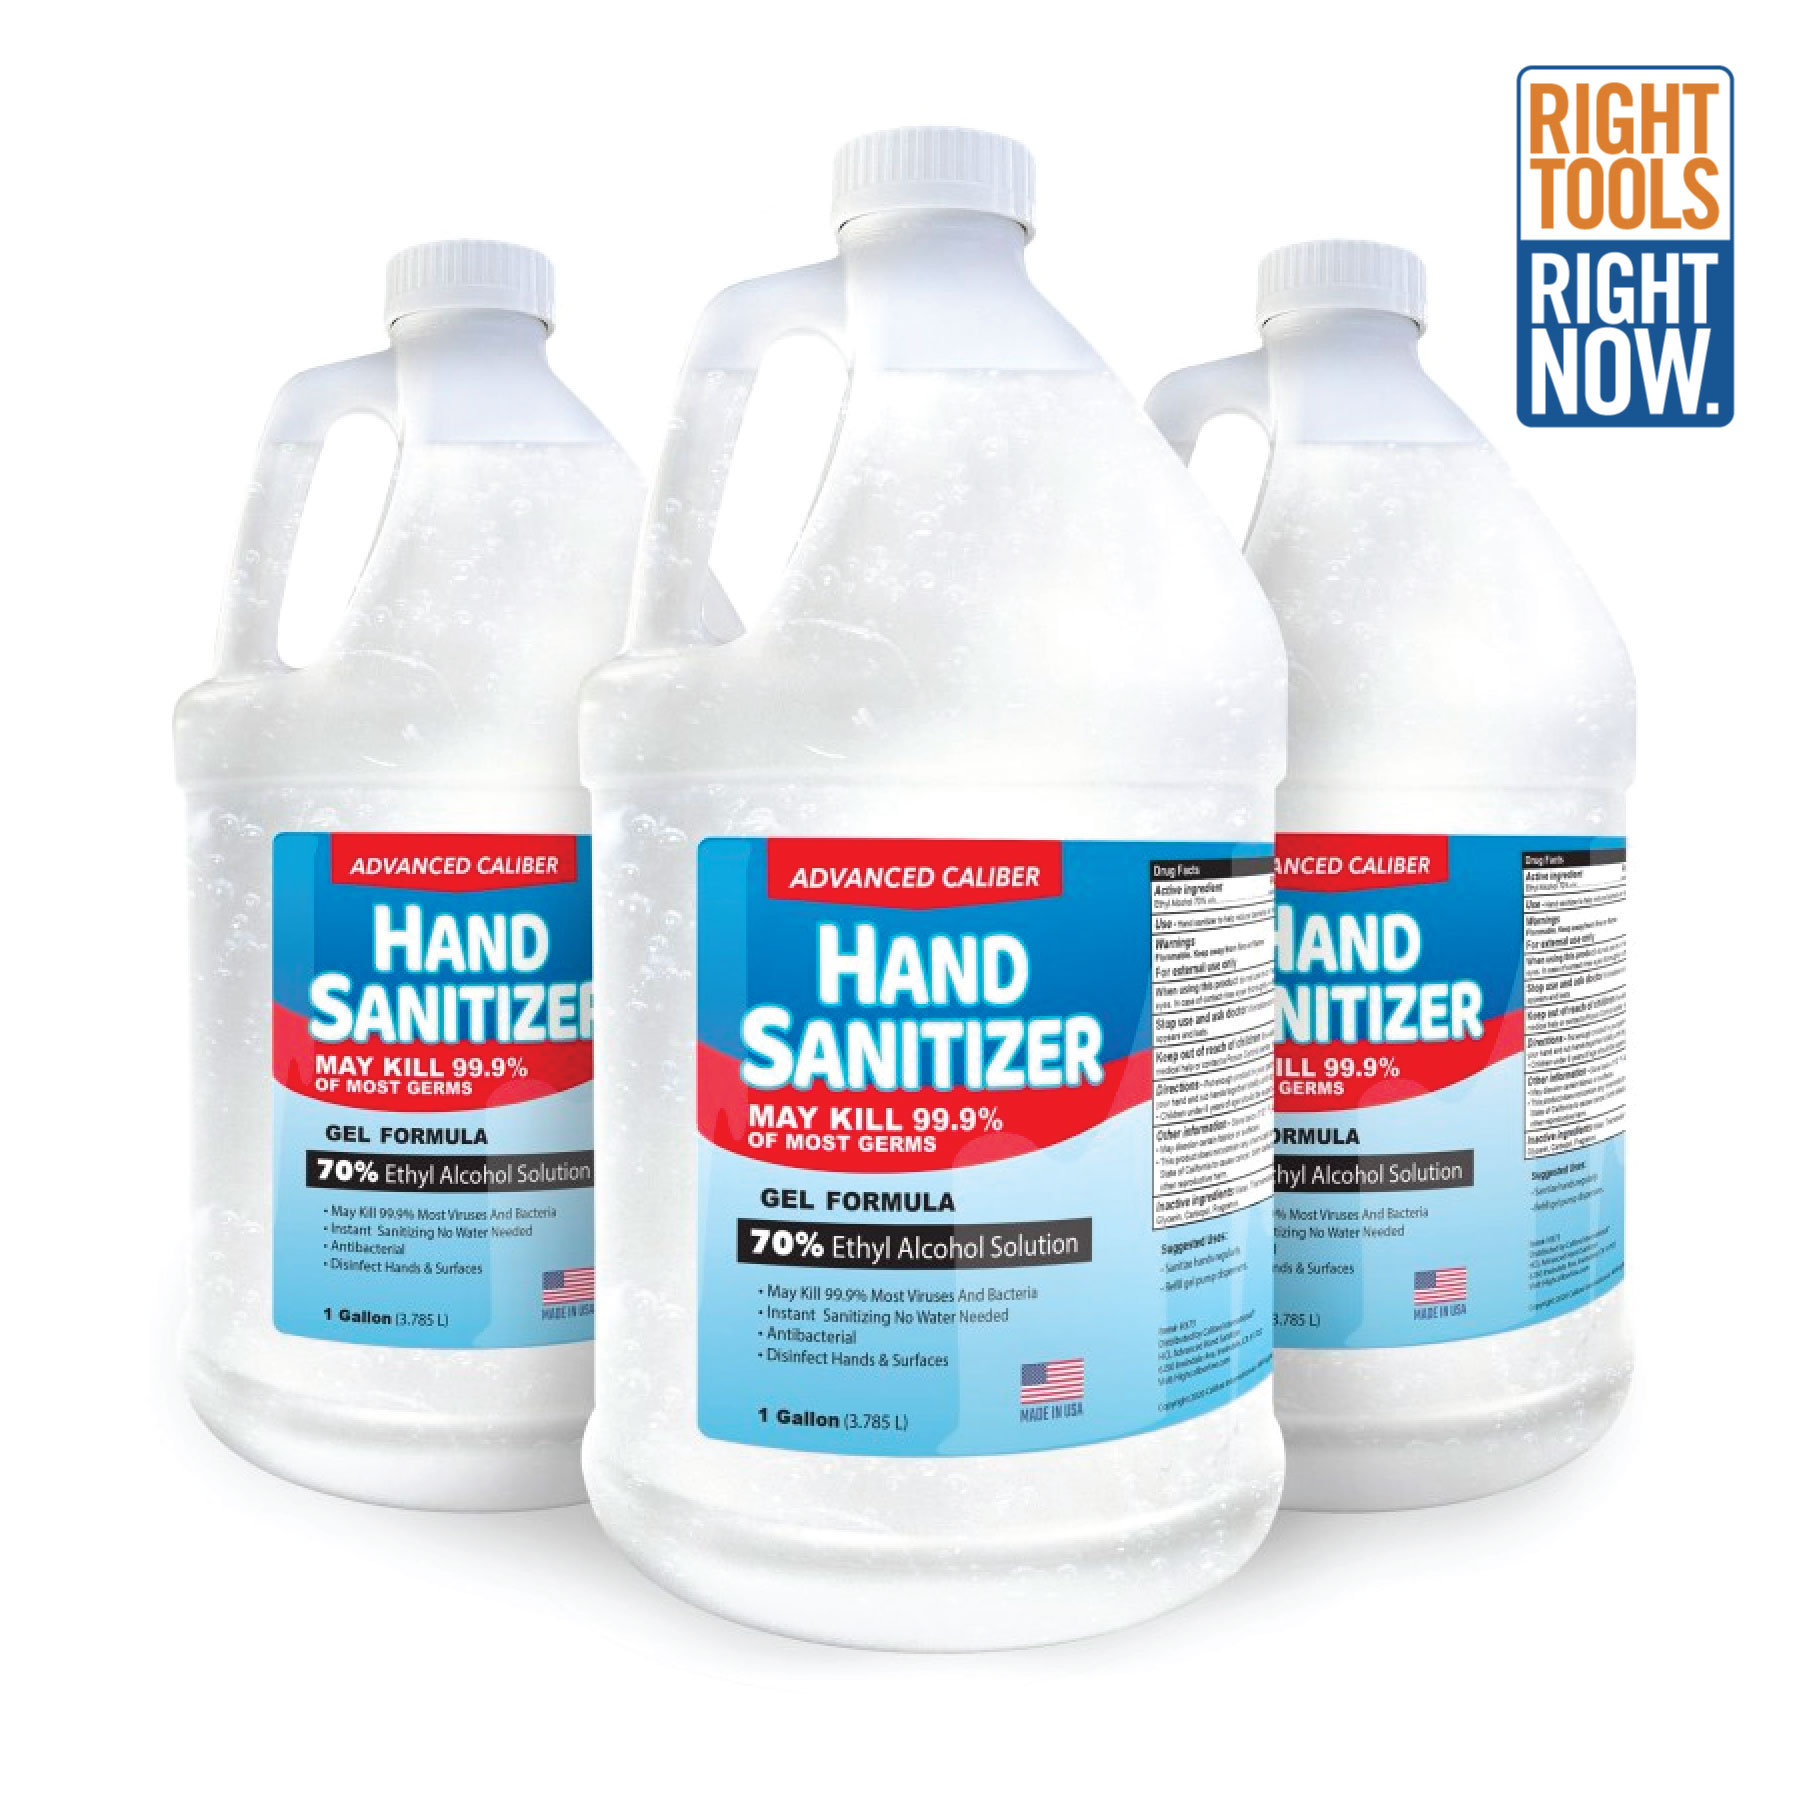 Made to Order: Gallon of Hand Sanitizer COVID,COVID-19,SARS,Virus,Viruses,Coughs,Safety,Sanis,Wipes,Cleaners,Antibacterials,Screens,Shields,Sneeze,Clear